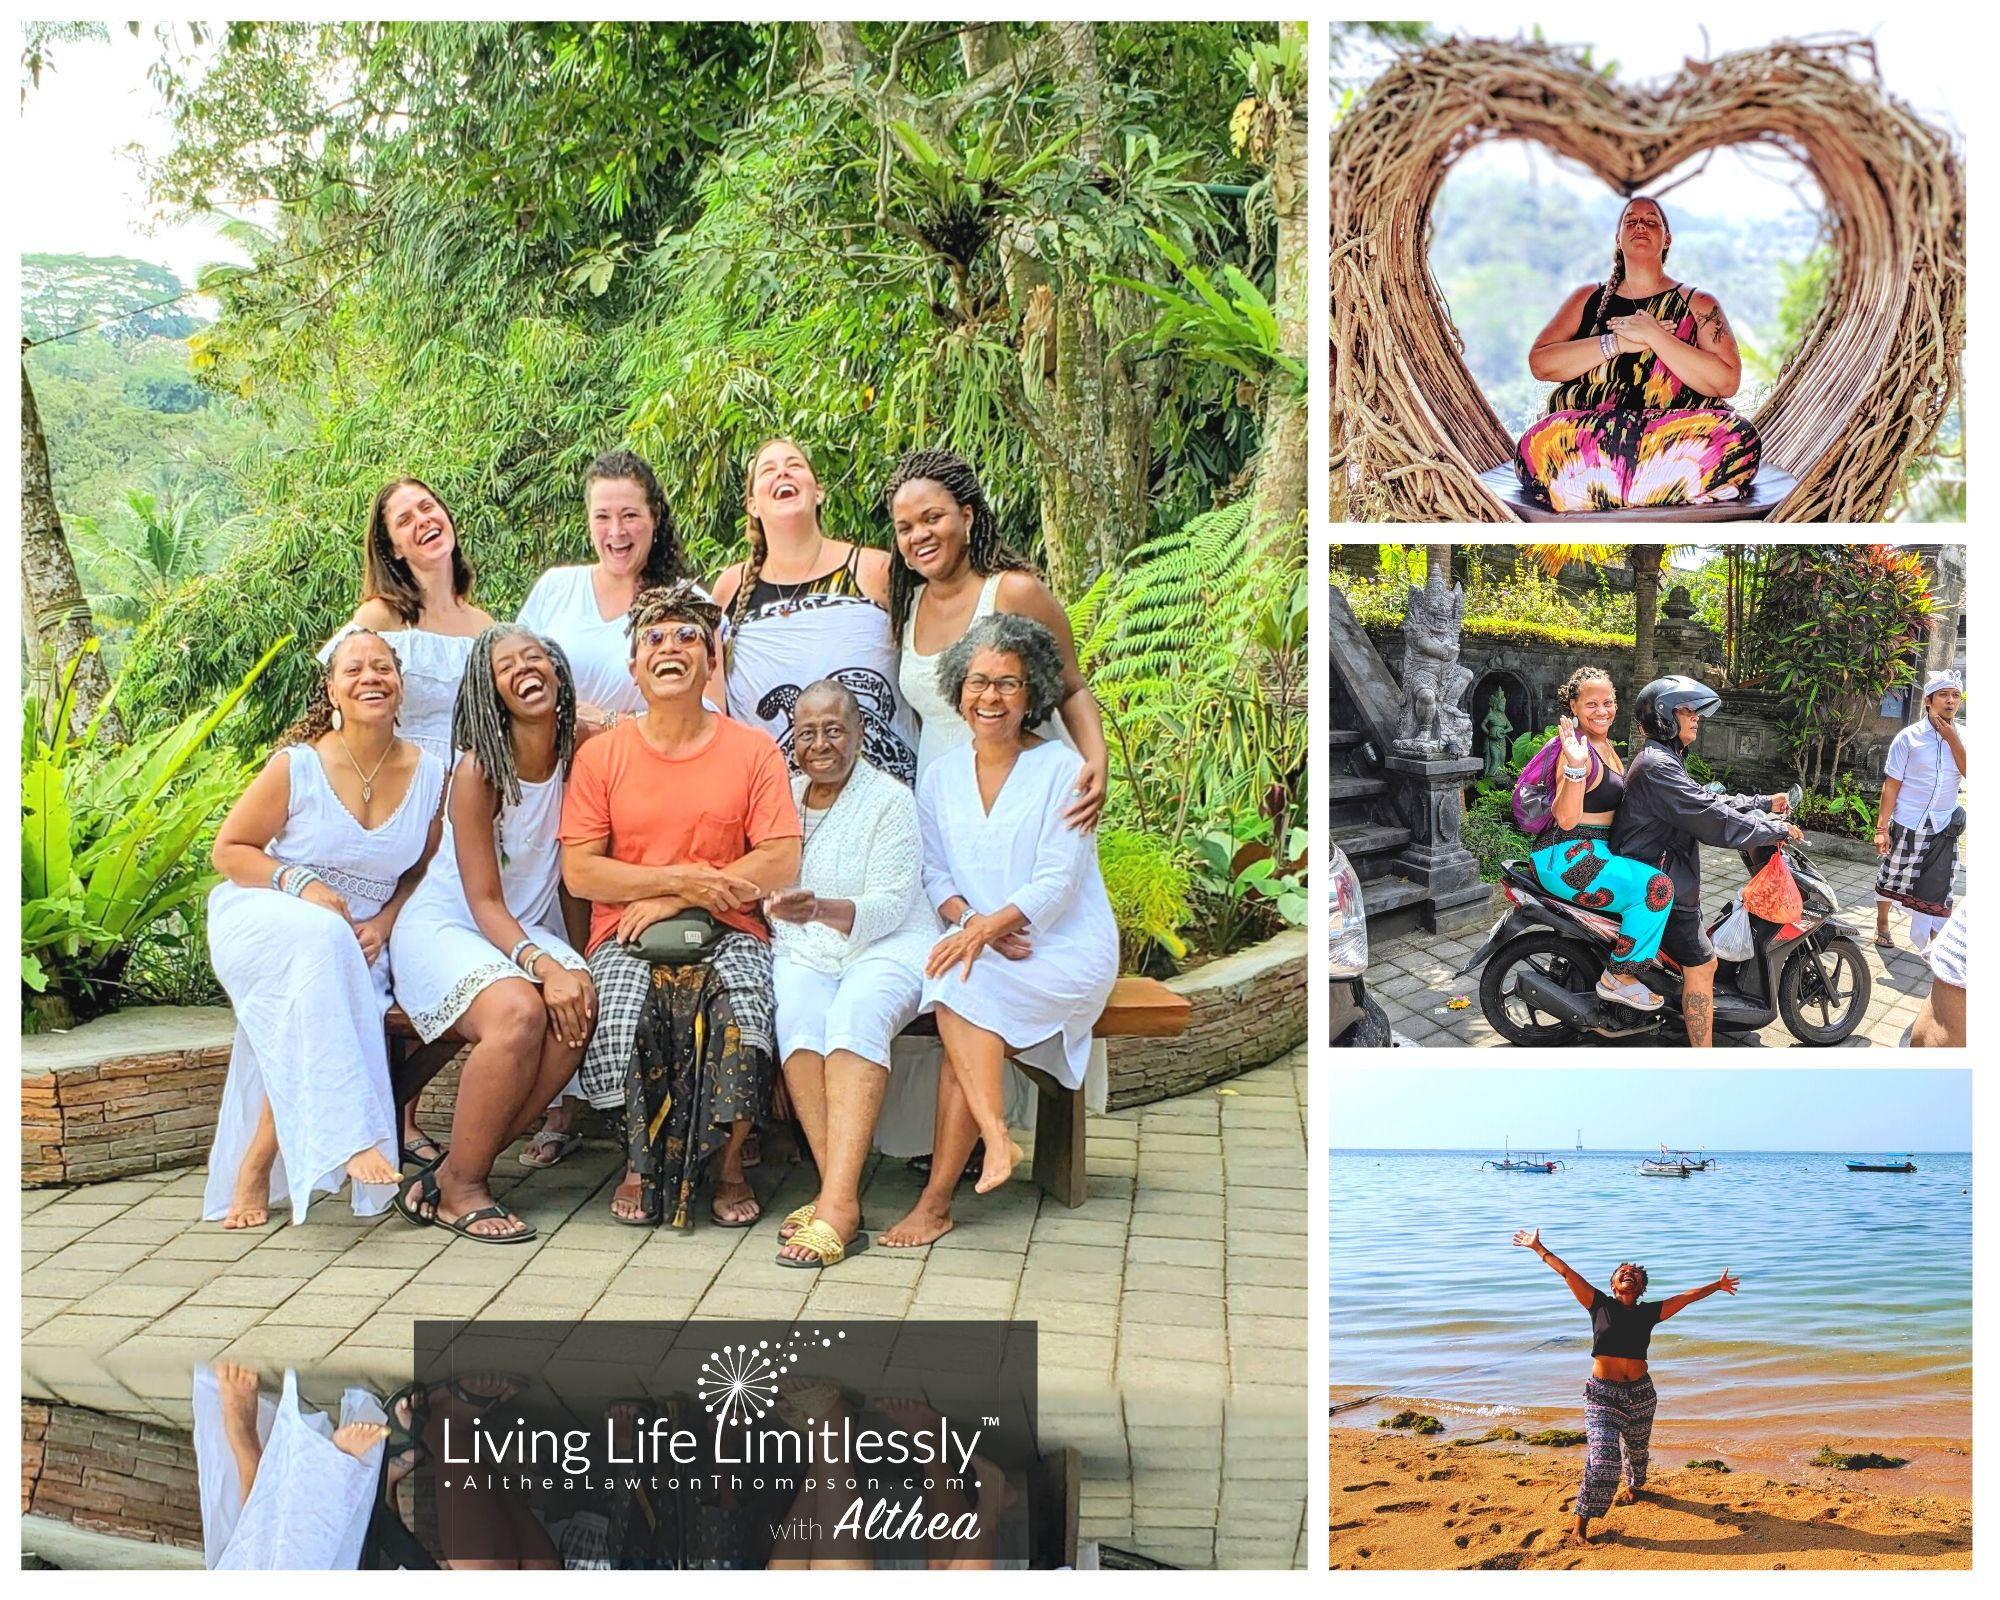 Living Life Limitlessly Qatar-Bali Healing Retreat @ Bali, Indonesia